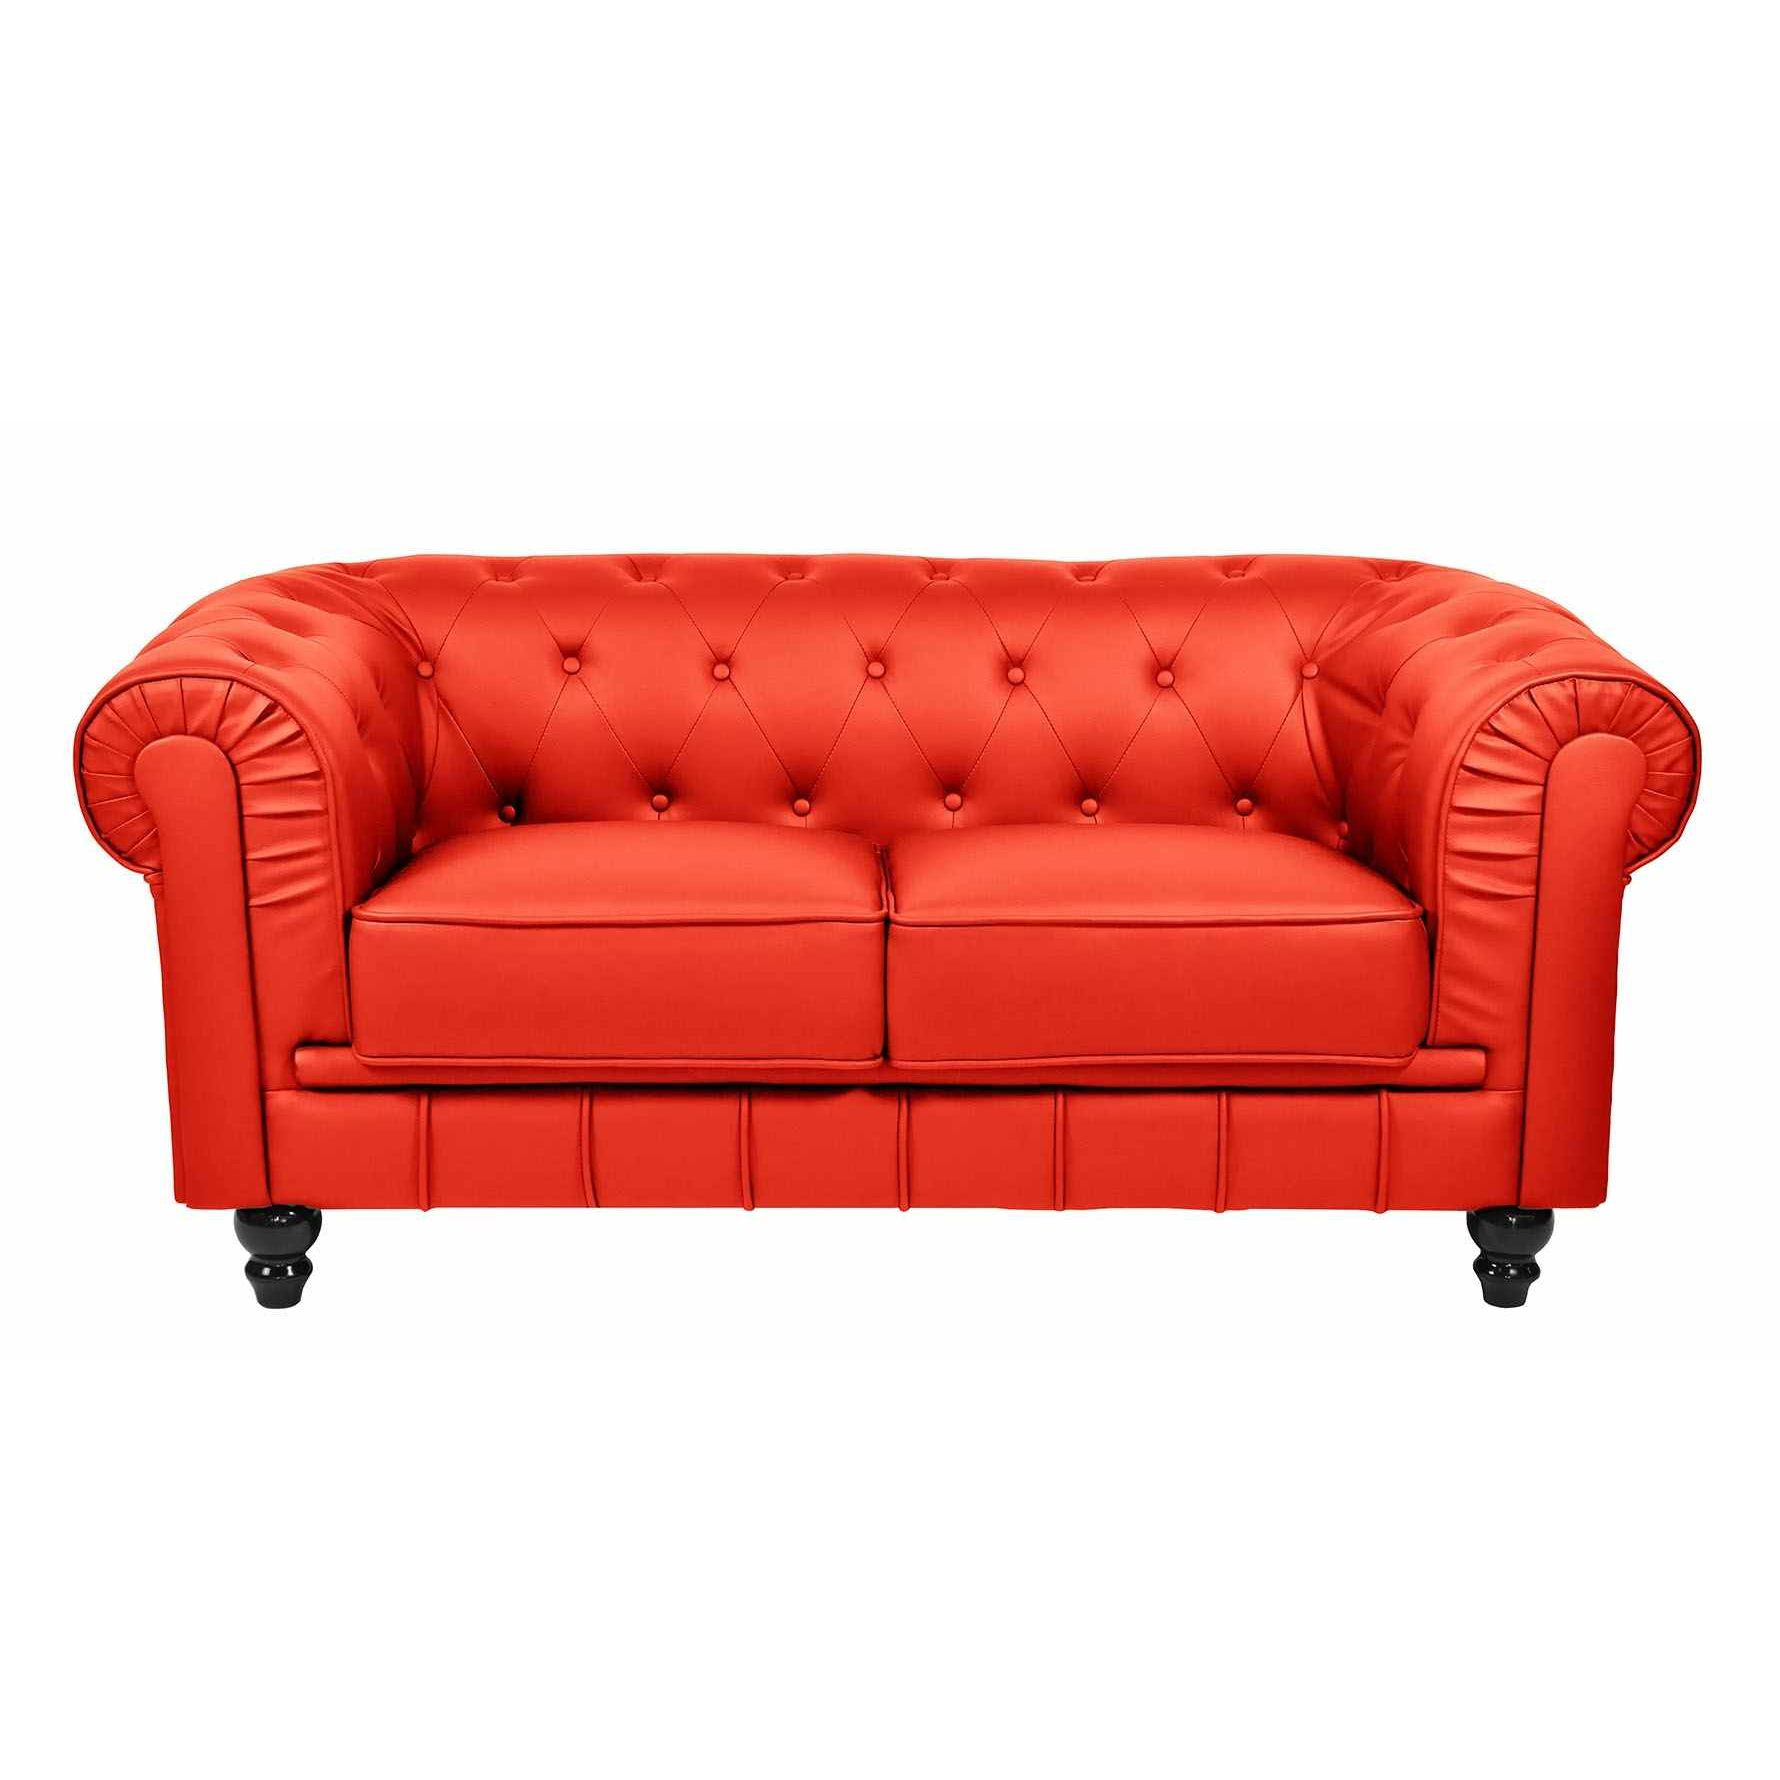 Canapé Chesterfield 2 Places Canapé Chesterfield 2 Places Canap Capitonn 2 Places Marron